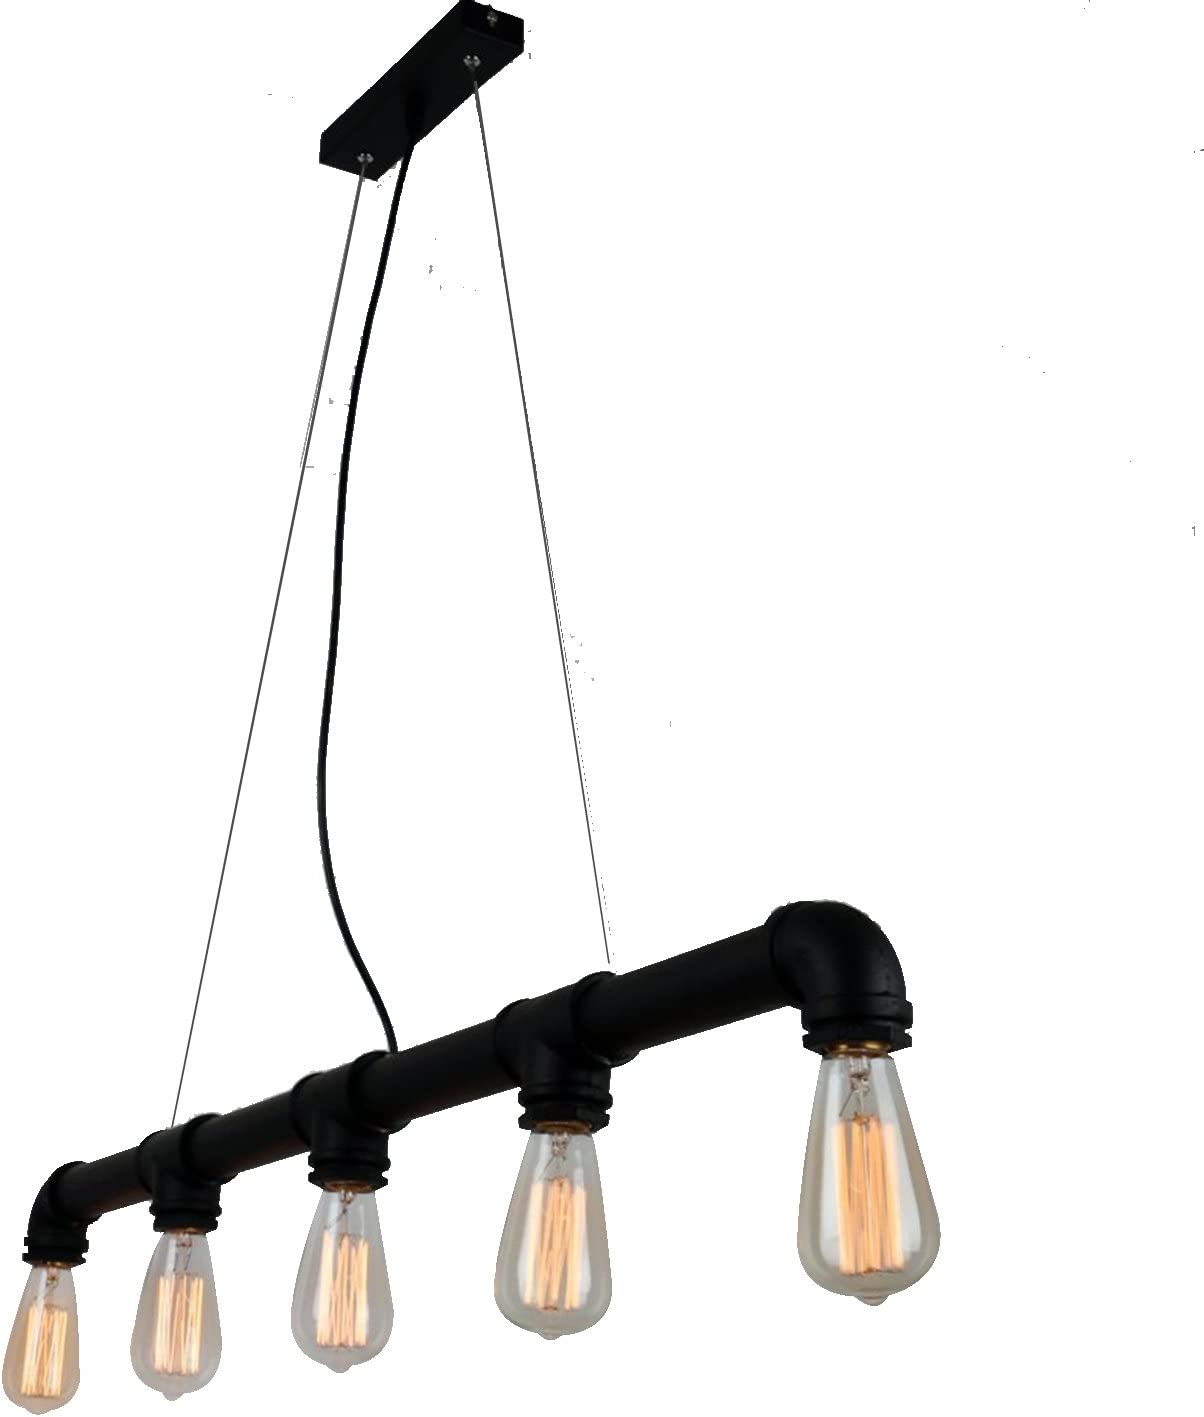 UNITARY Brand Vintage Metal Water Pipe Pendant Light Max 200W with 5 Lights Black Finish